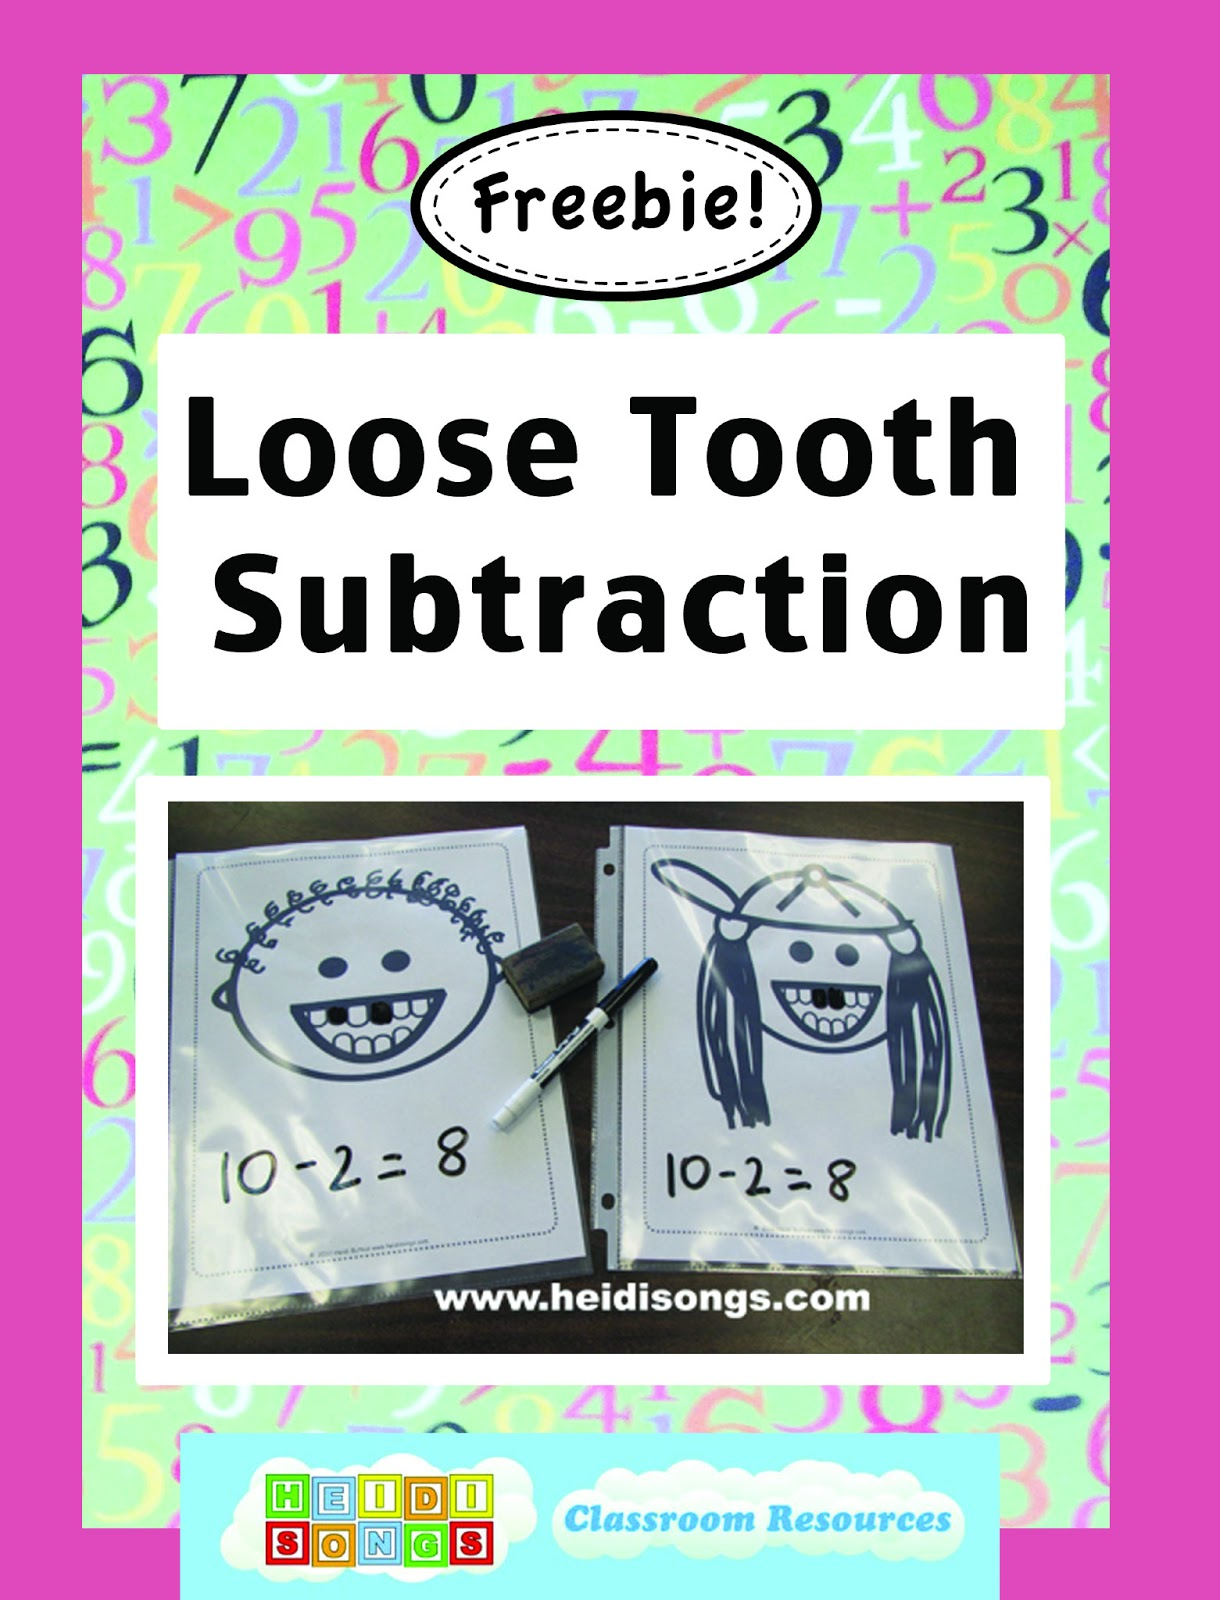 Loose Tooth Subtraction